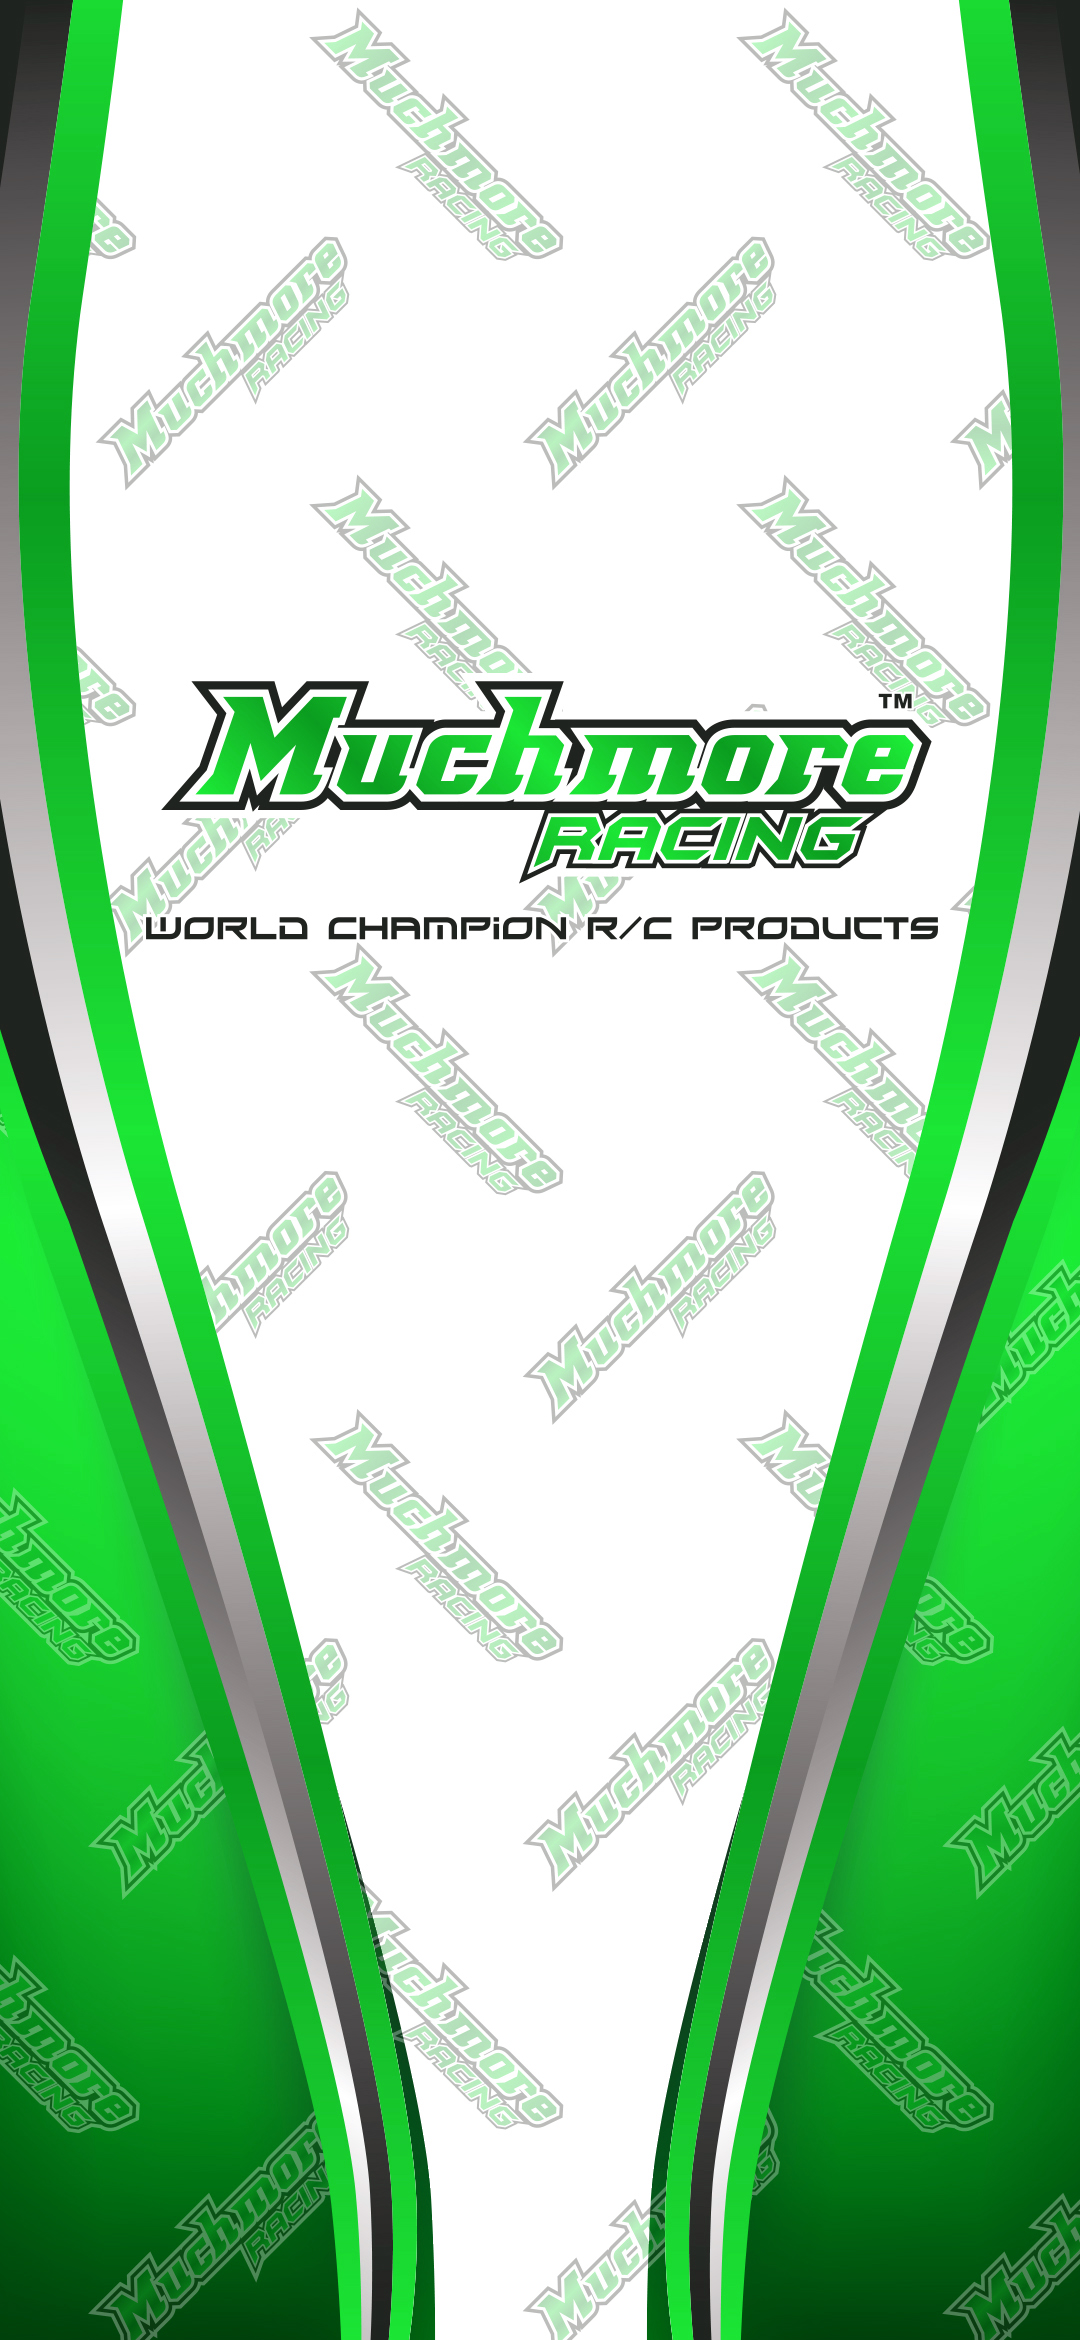 MuchmoreRacing_Wallpaper_Green_Ver_LG_195by9-ratio.JPG